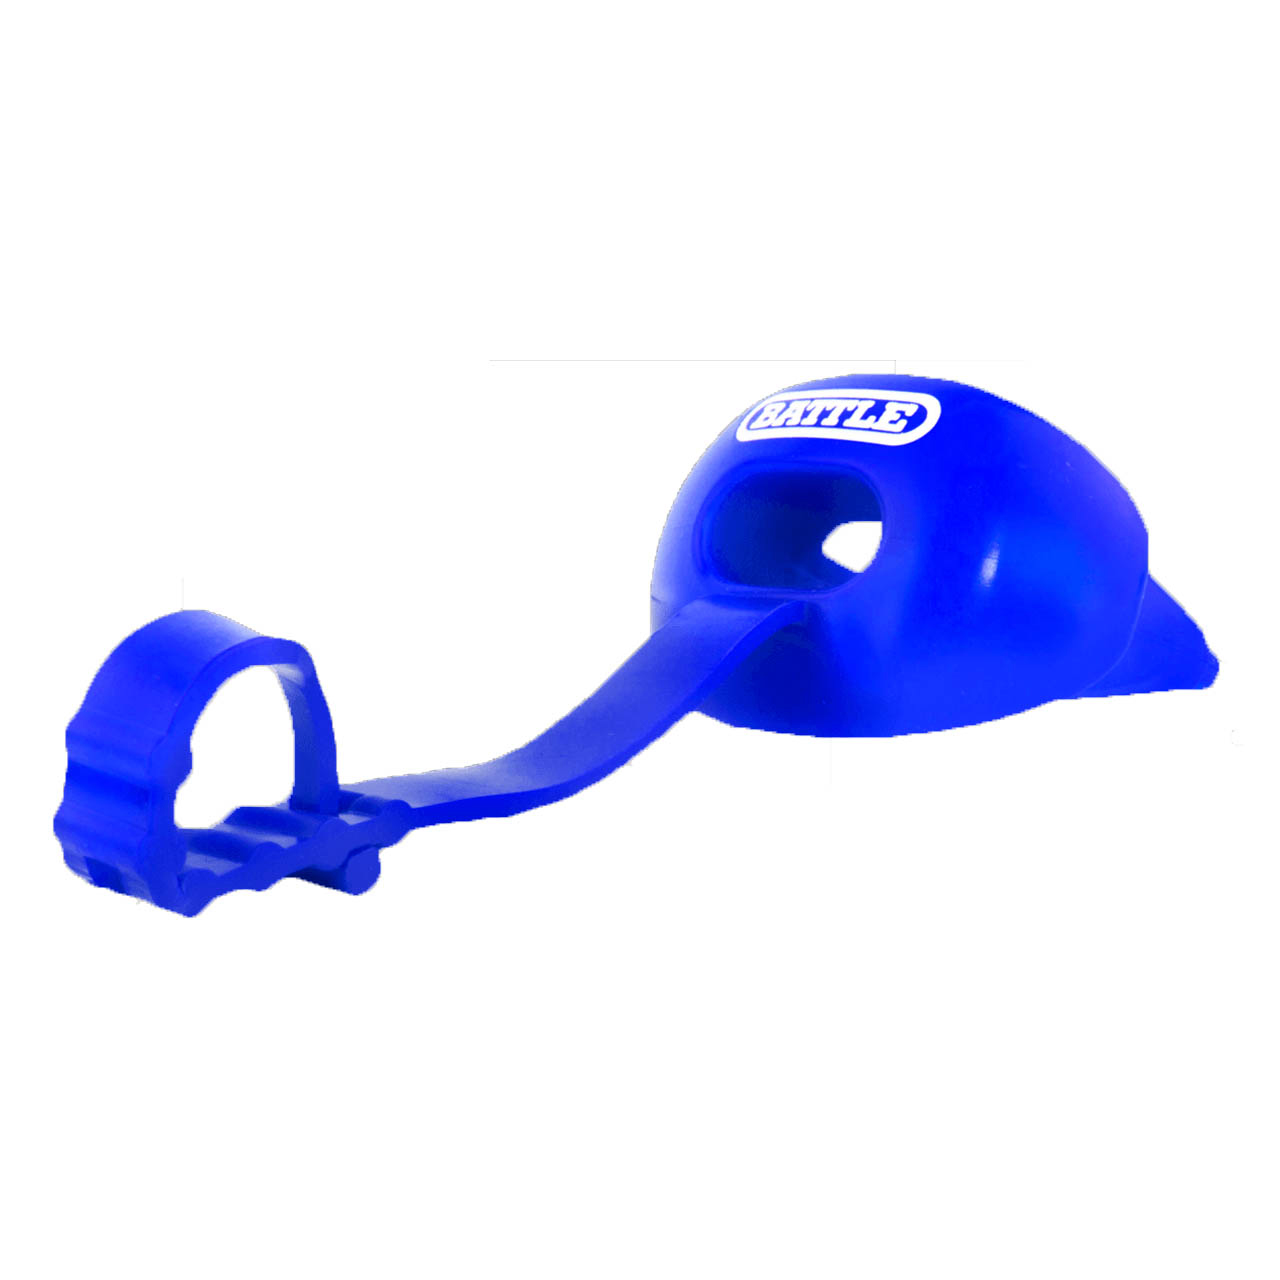 Battle Oxygen Mouth Guard with Connected Strap